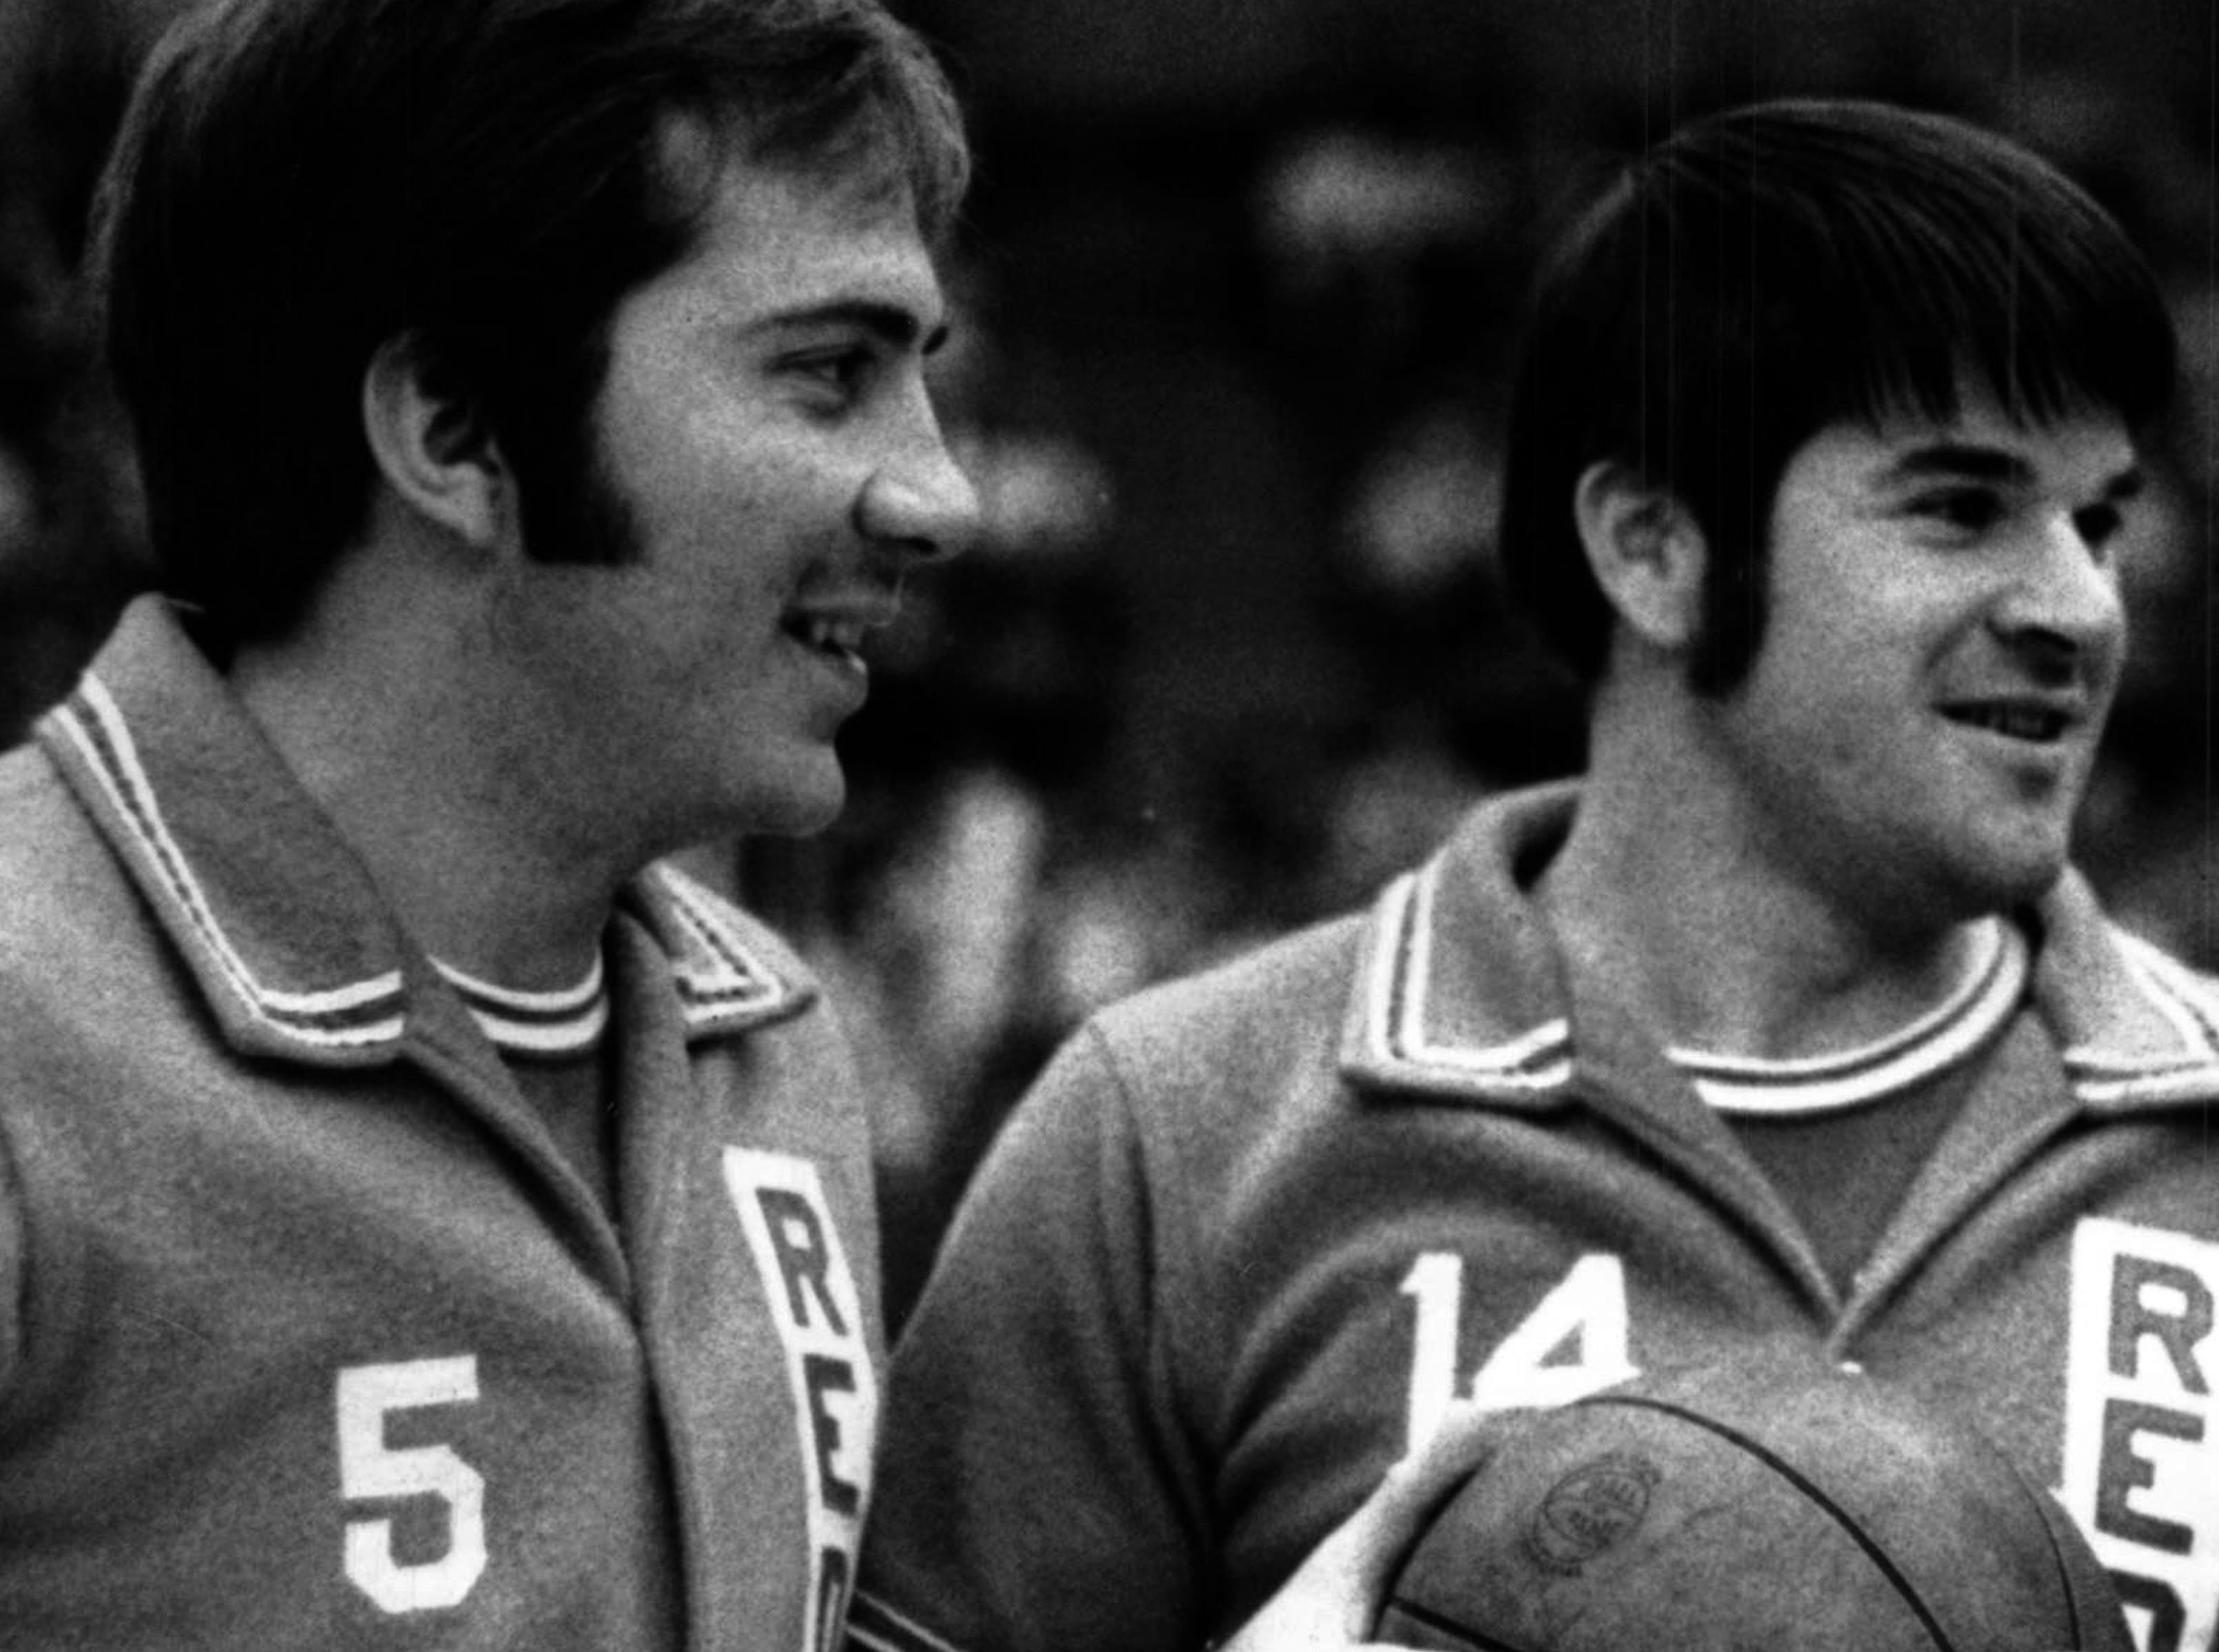 JANUARY 23, 1971: Basketball: Pete Rose and Johnny Bench with former UC coach Ed Jucker before a 1971 game involving Reds' off-season team. The Enquirer/Fred Straub